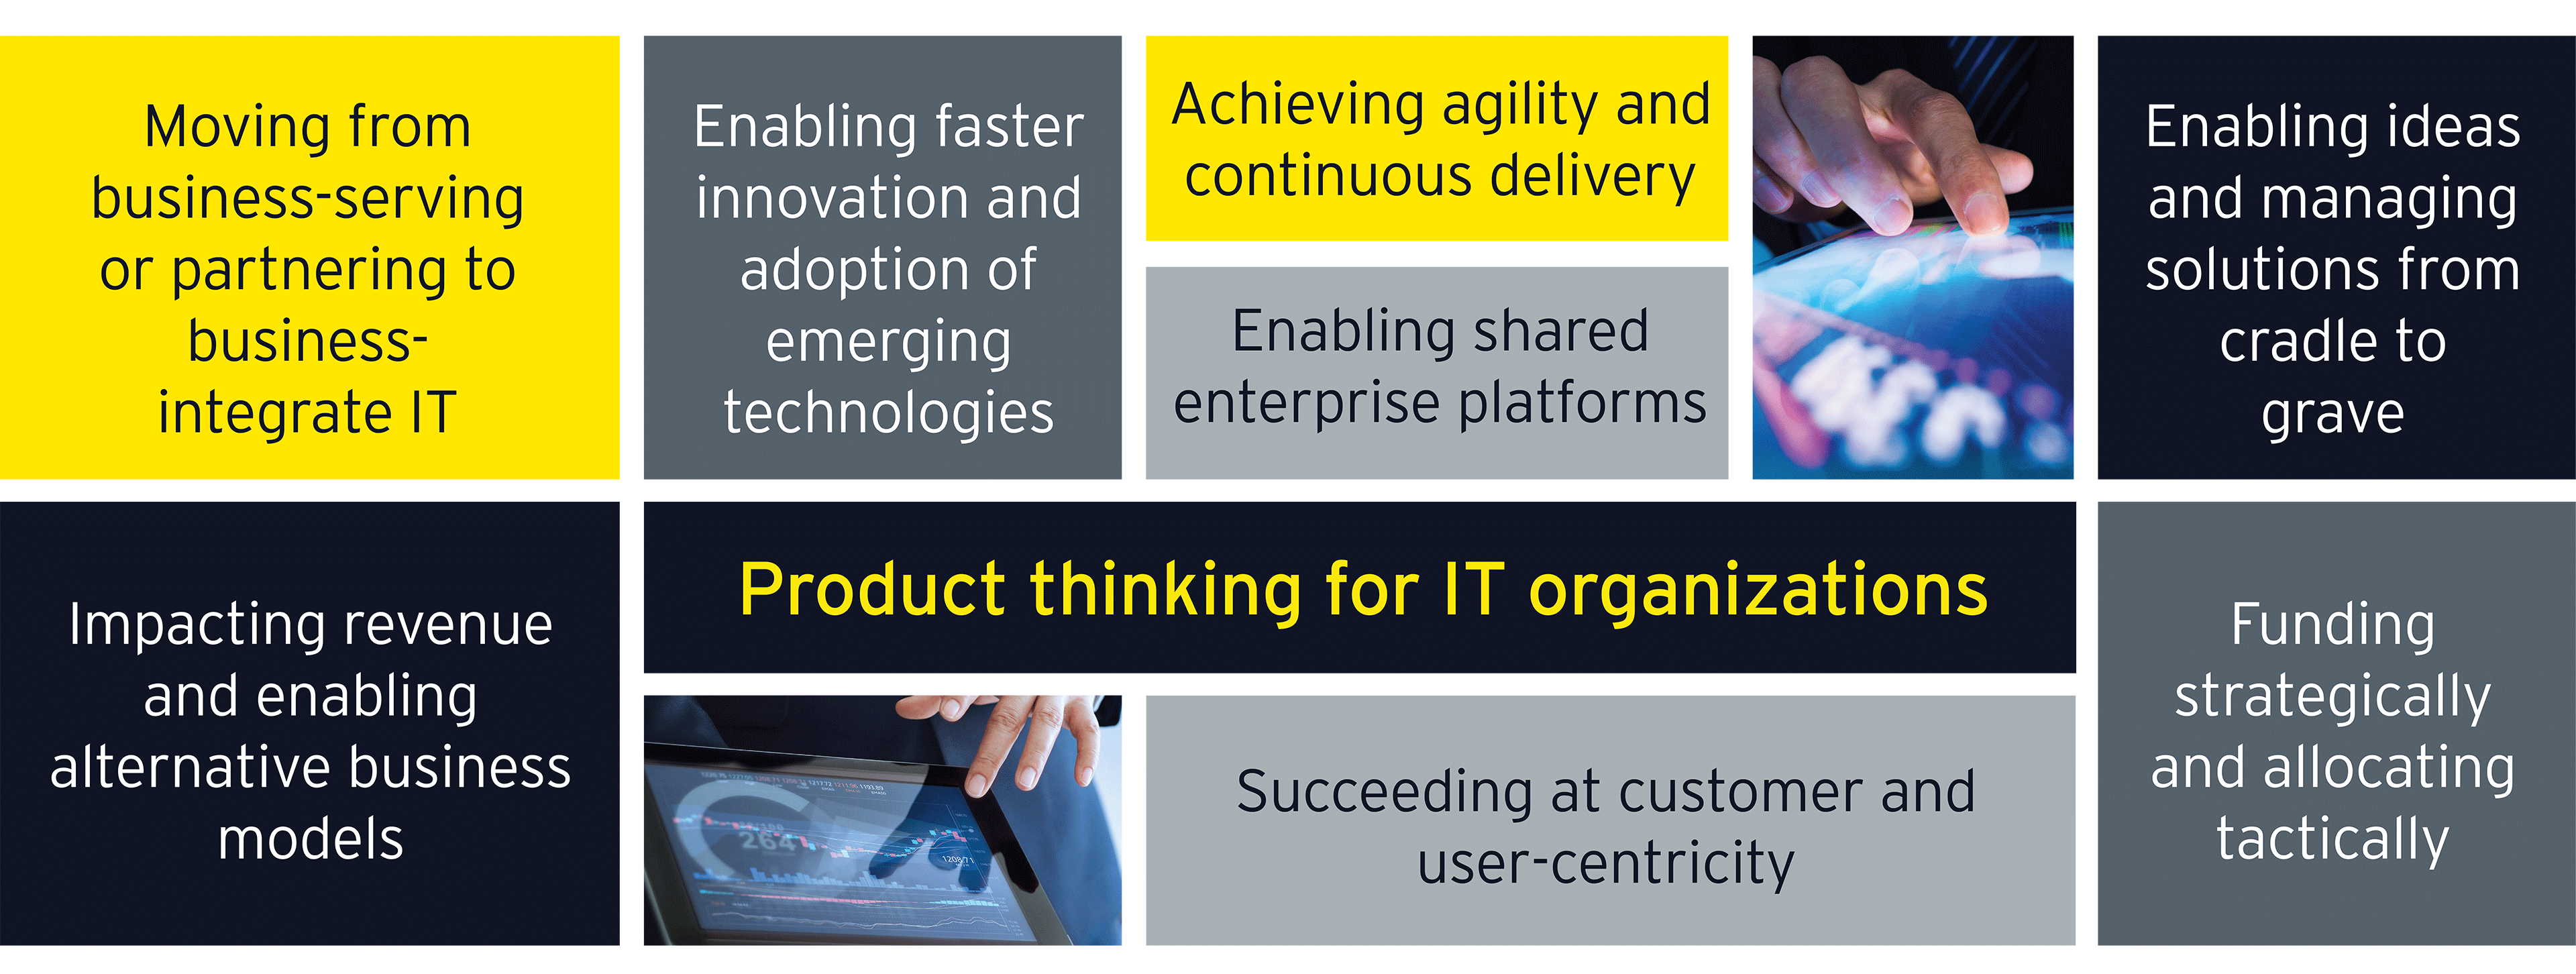 ey-product-thinking-for-IT-organizations